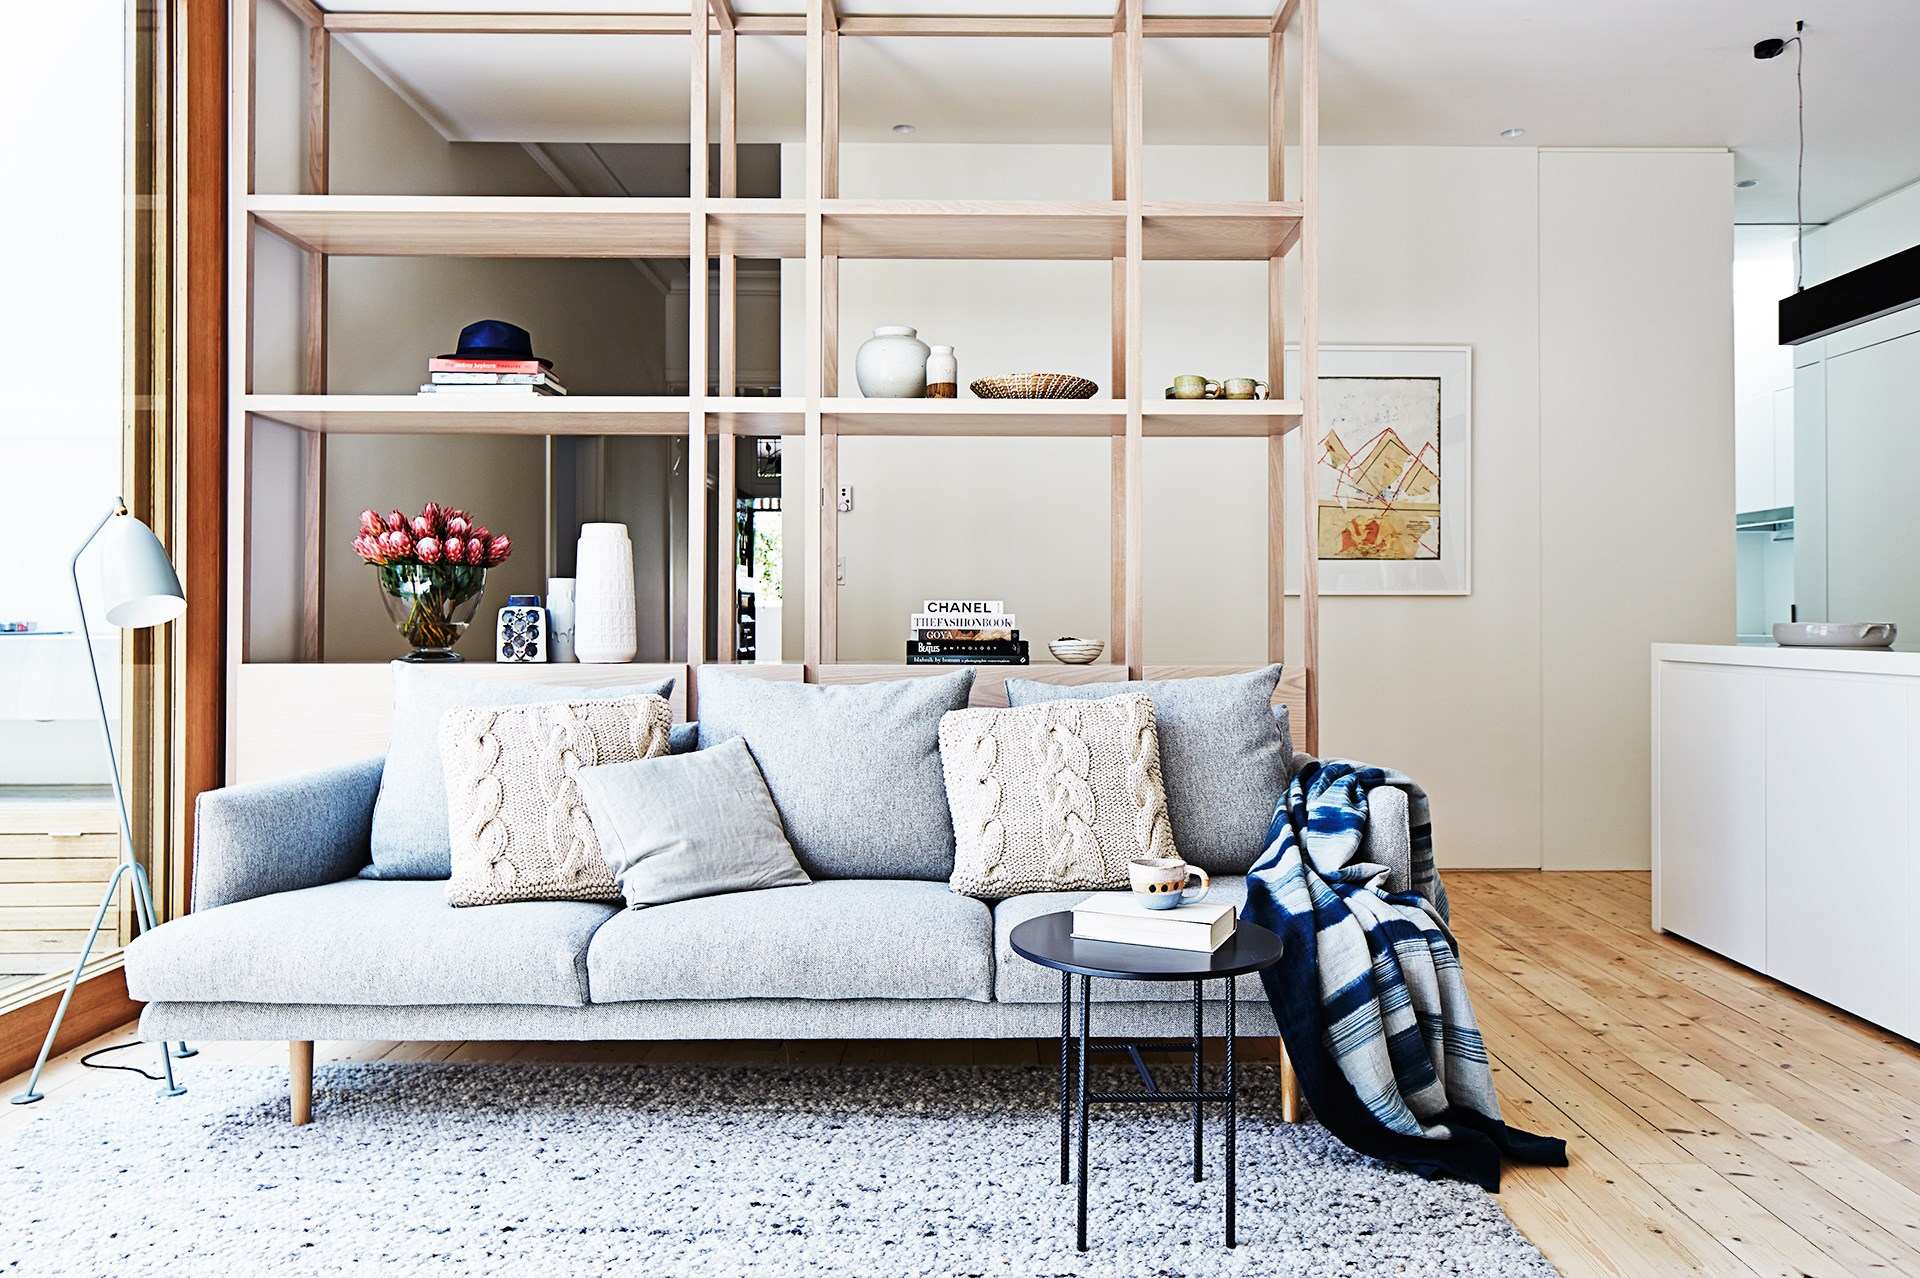 "**Divide a room with a shelving unit.** If you want to create separate zones within a small space but hesitate to block off areas entirely, a shelving unit can be an excellent solution. It's not only useful for storage, but it also acts as a barrier that you can see through, giving the impression of more space. See more of this [Edwardian house](http://www.homestolove.com.au/gallery-pennys-fresh-edwardian-house-renovation-1826|target=""_blank""). Photo: Alicia Taylor / *real living*"